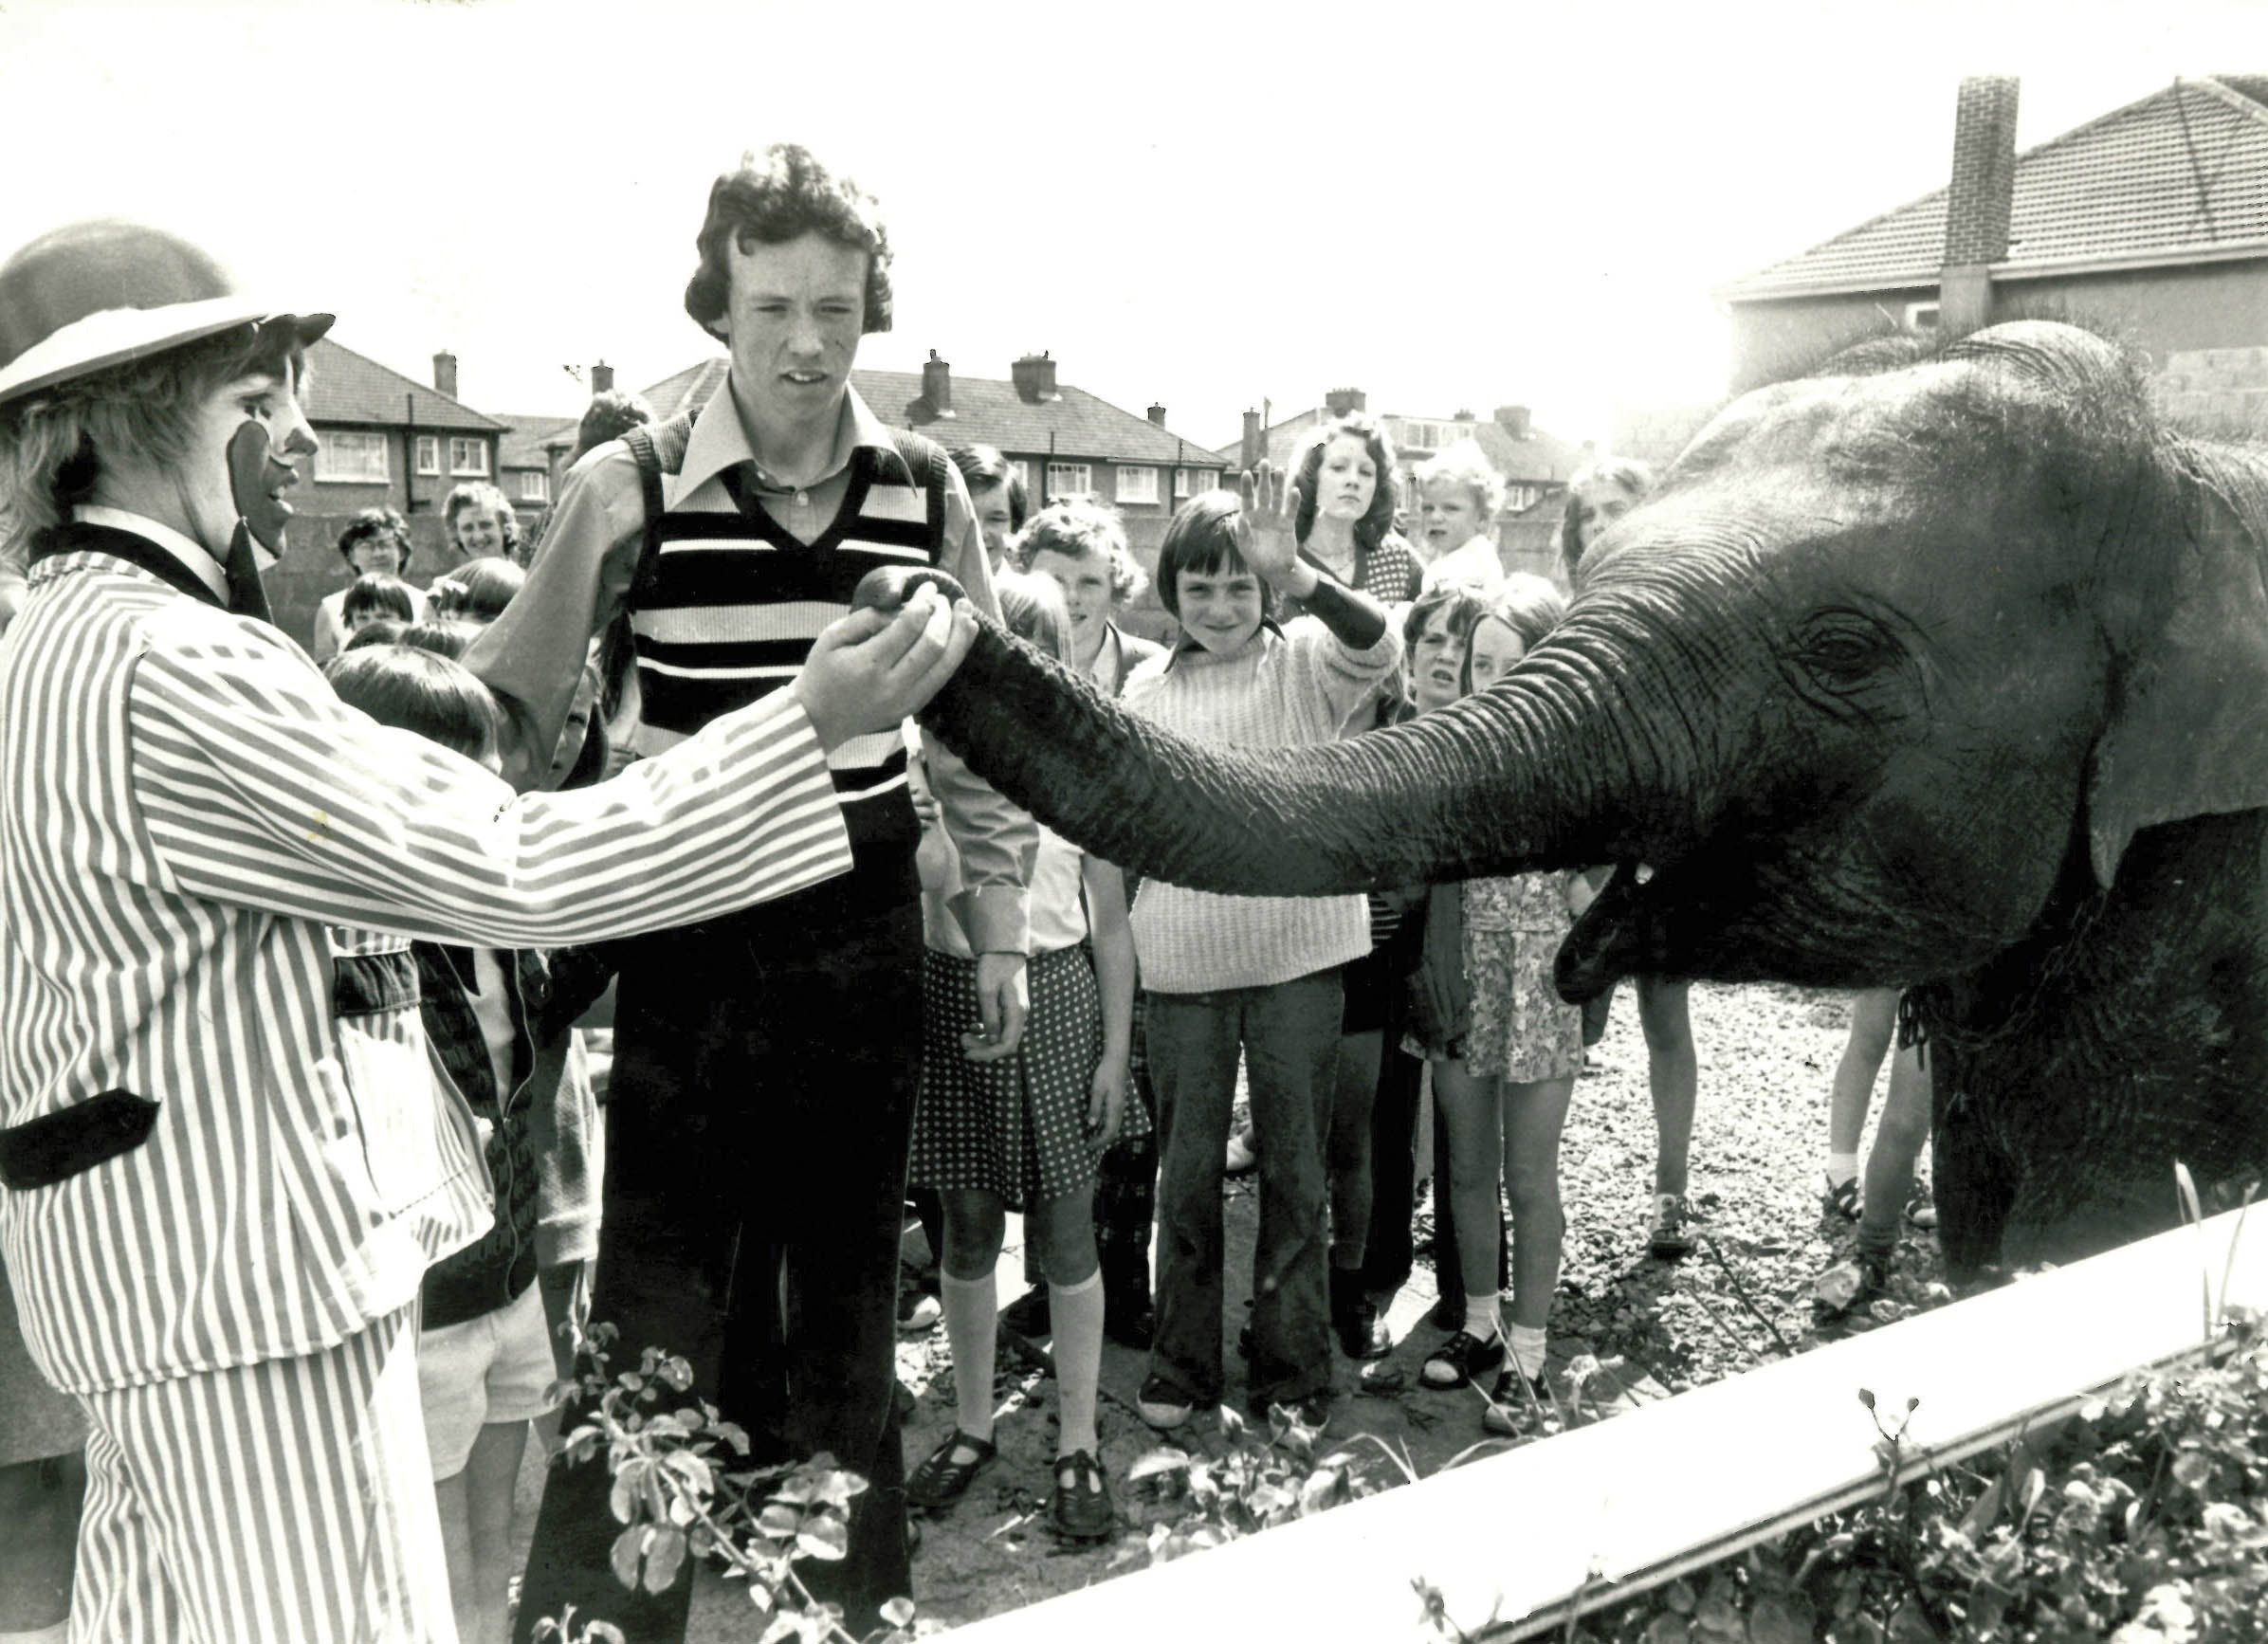 Showing early signs of a flair for publicity. John persuaded Fossetts famous circus to bring an elephant and clowns to a children's birthday party at his parents' home. He was 16.